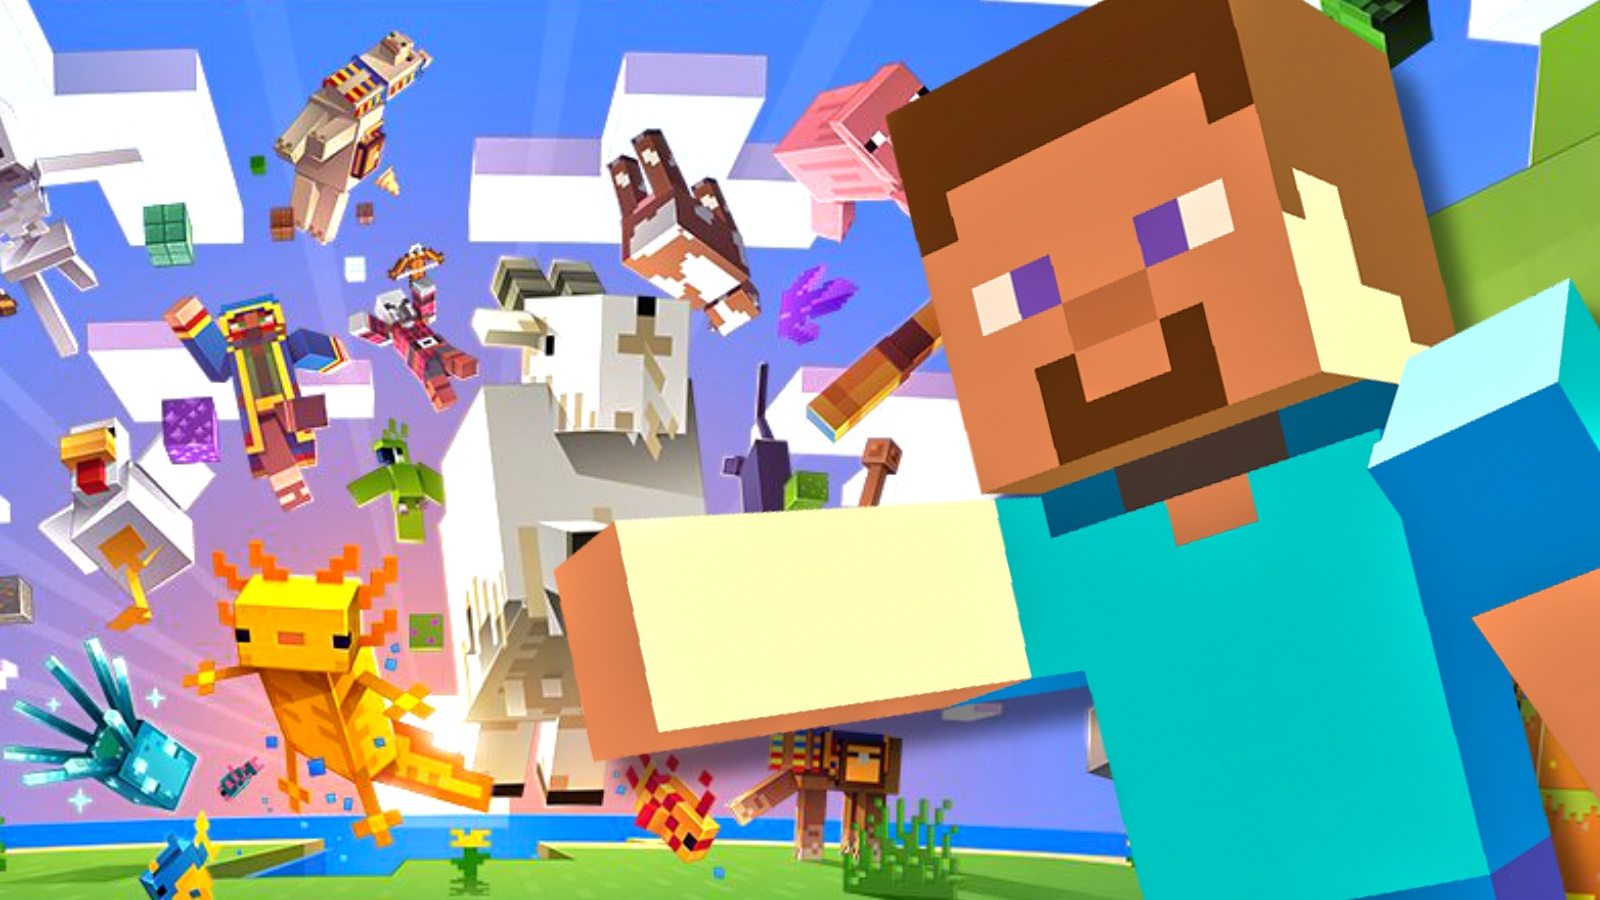 Minecraft 1.17 Caves & Cliffs finally has a release date